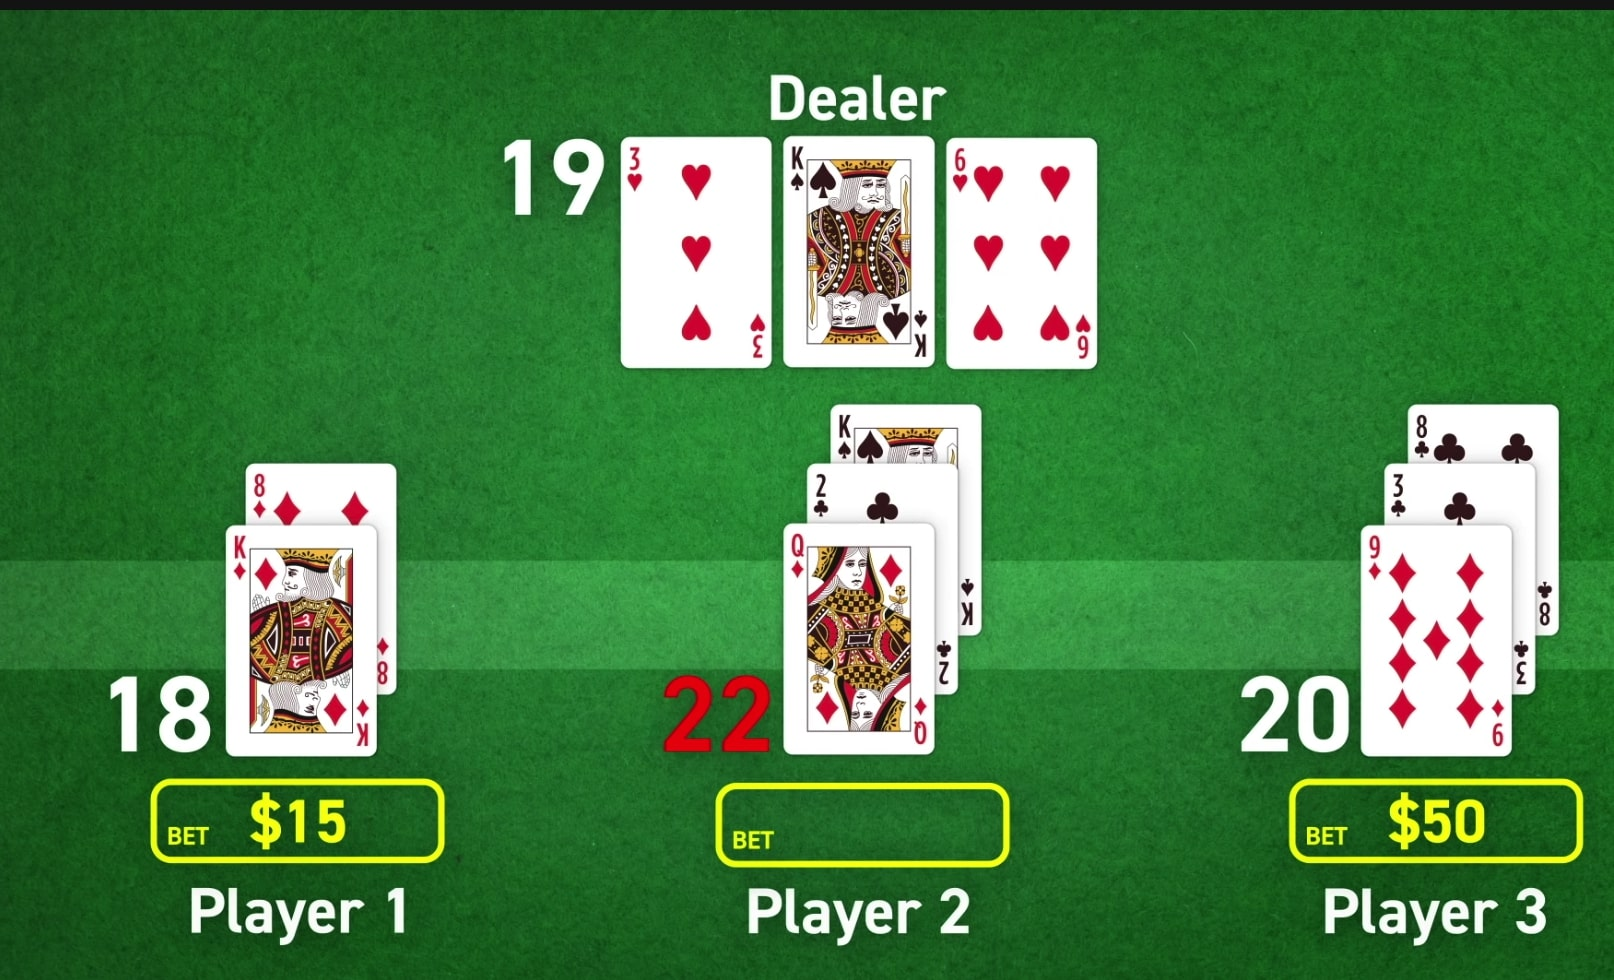 Card Counting - Case 2